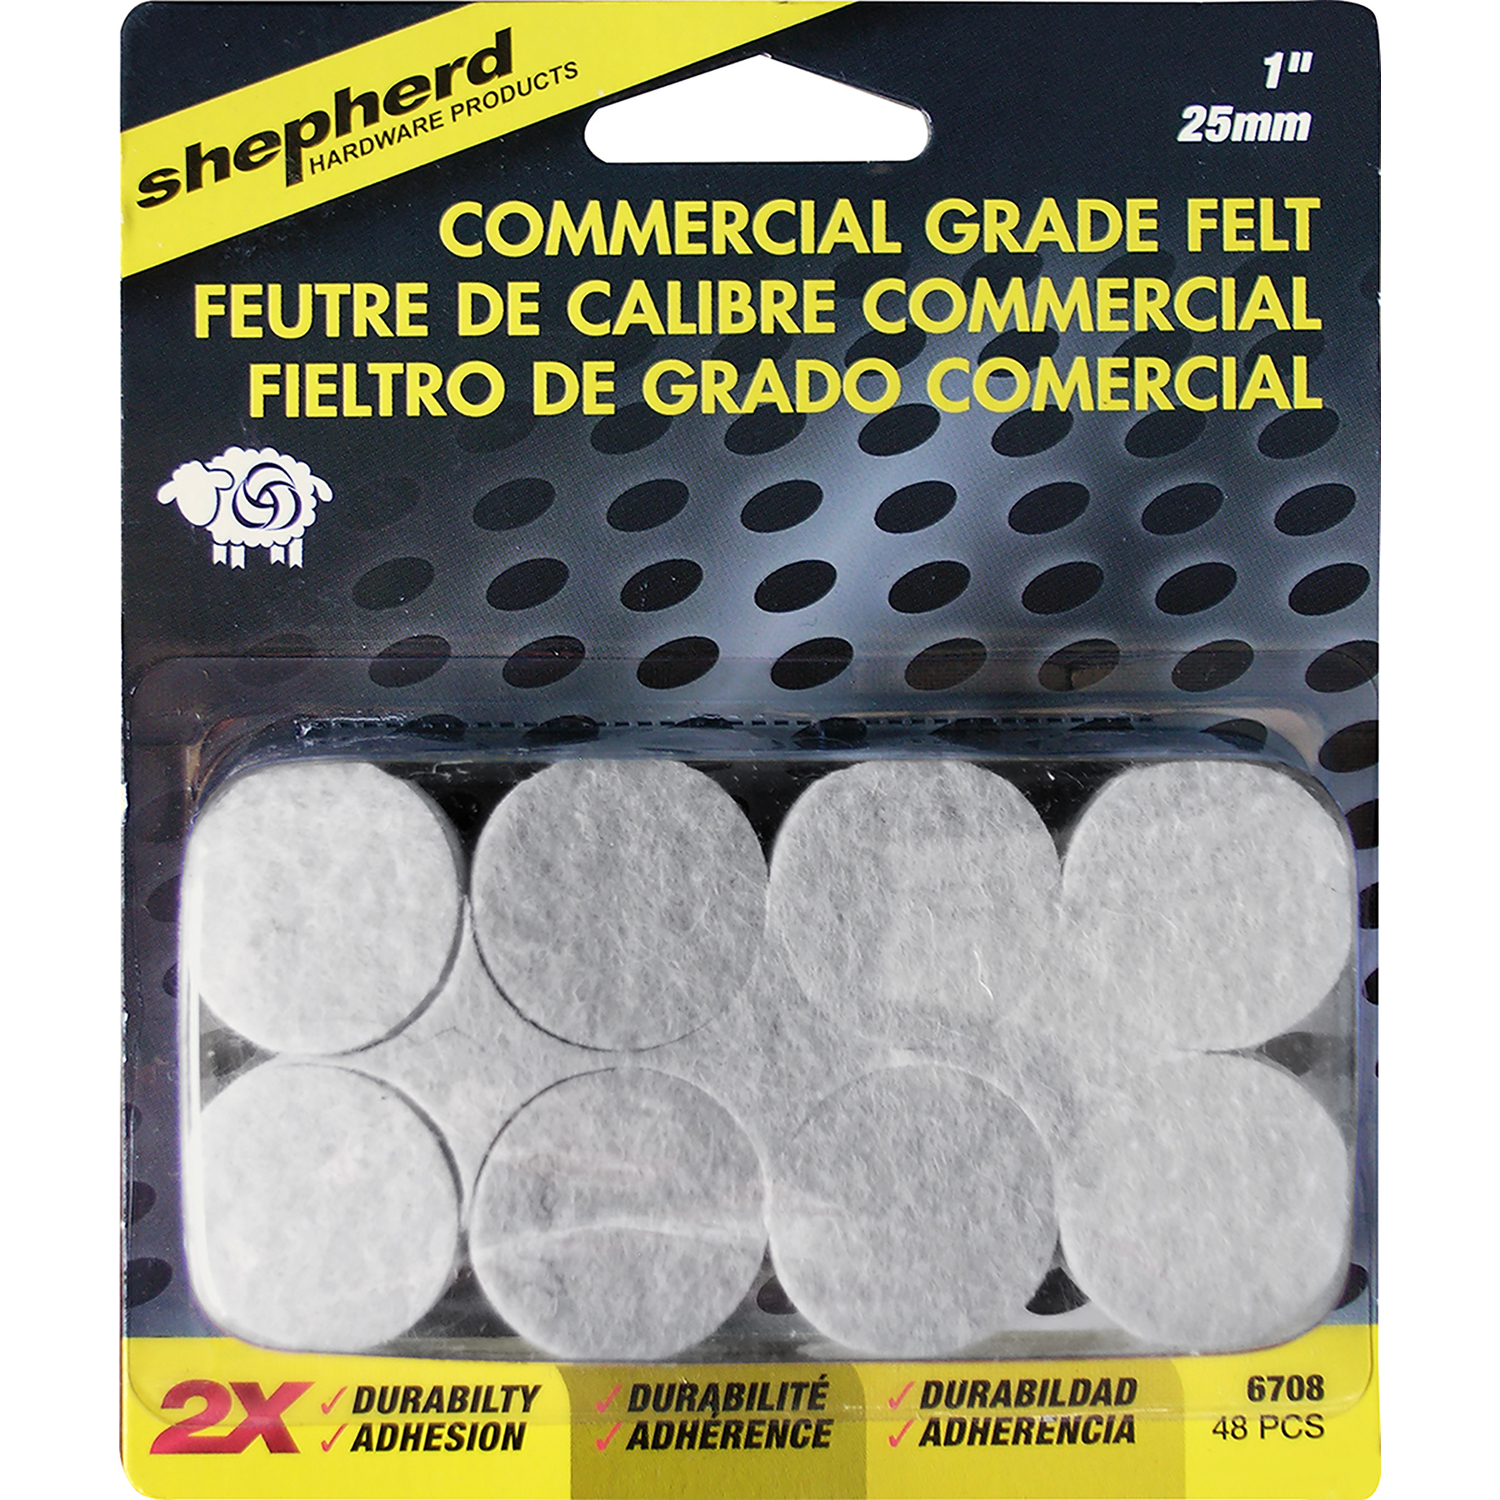 Shepherd  Felt  1 in. Adhesive  Chair Glide  48 count 1 in. W